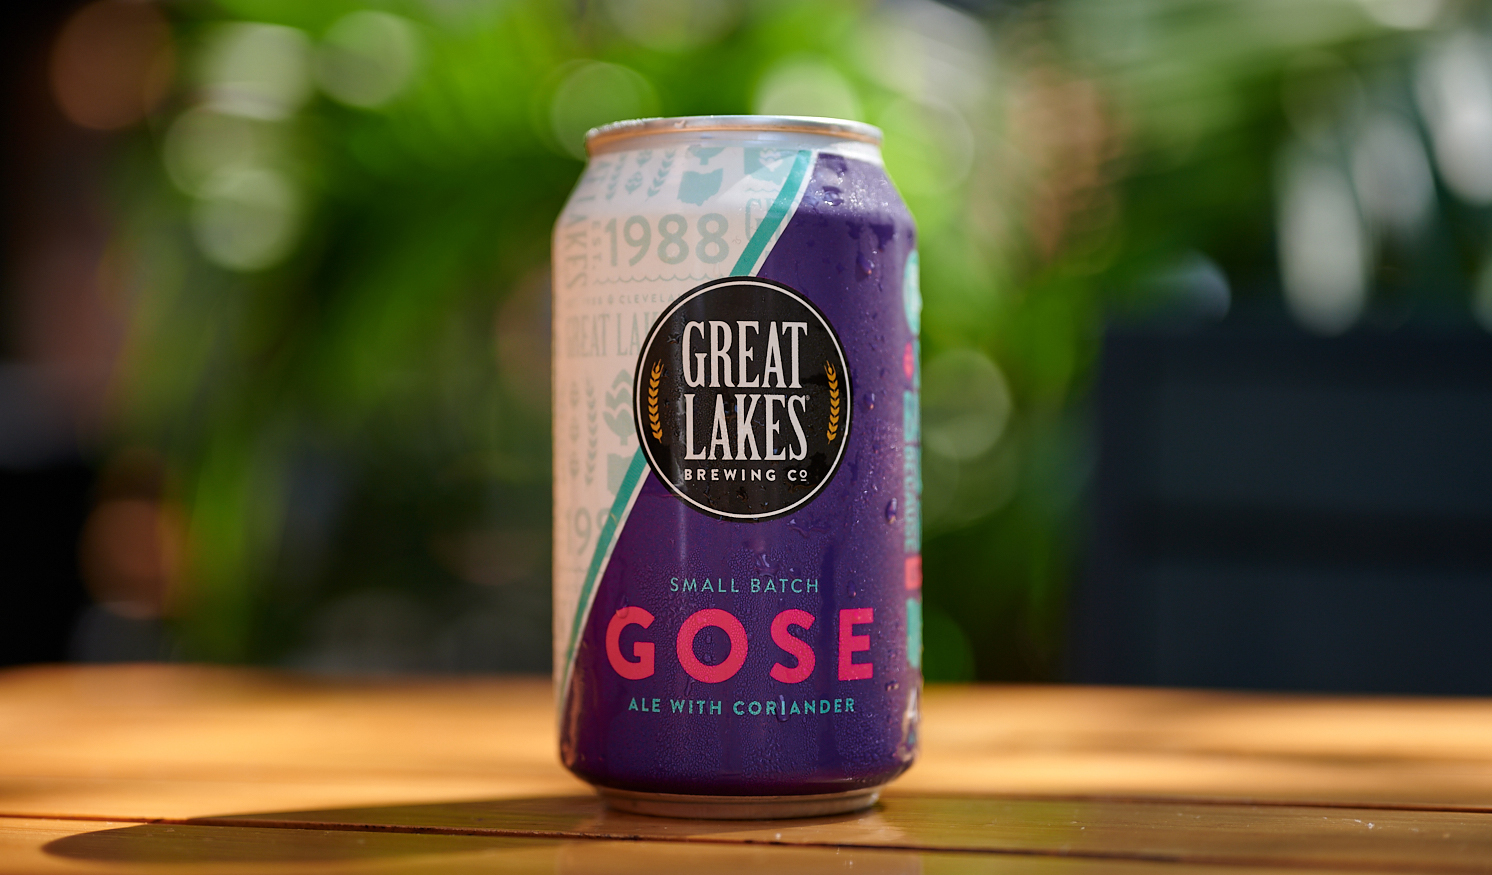 Small Batch Gose Release | Great Lakes Brewing Company